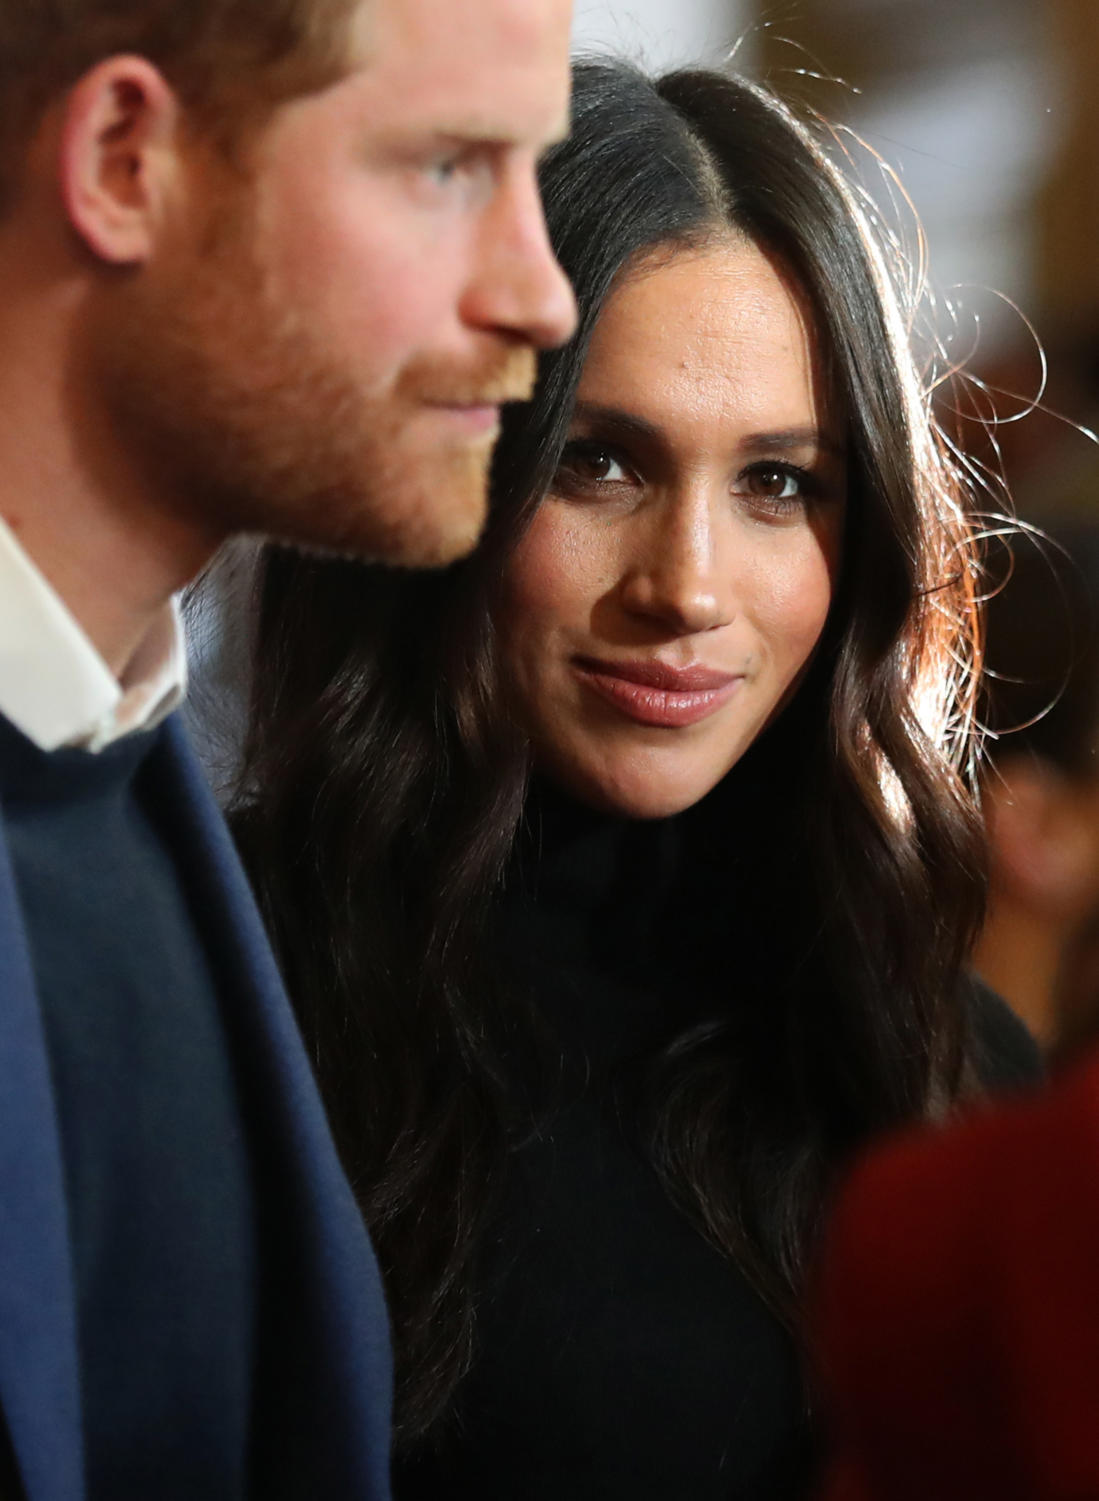 ALL EYES ON YOU. Meghan Markle is an American actress. Although she does have experience performing for an audience, a royal wedding is undoubtedly nerve-racking. Everything from Markle's dress to her makeup will be both praised and critiqued all over the media on the royal day.